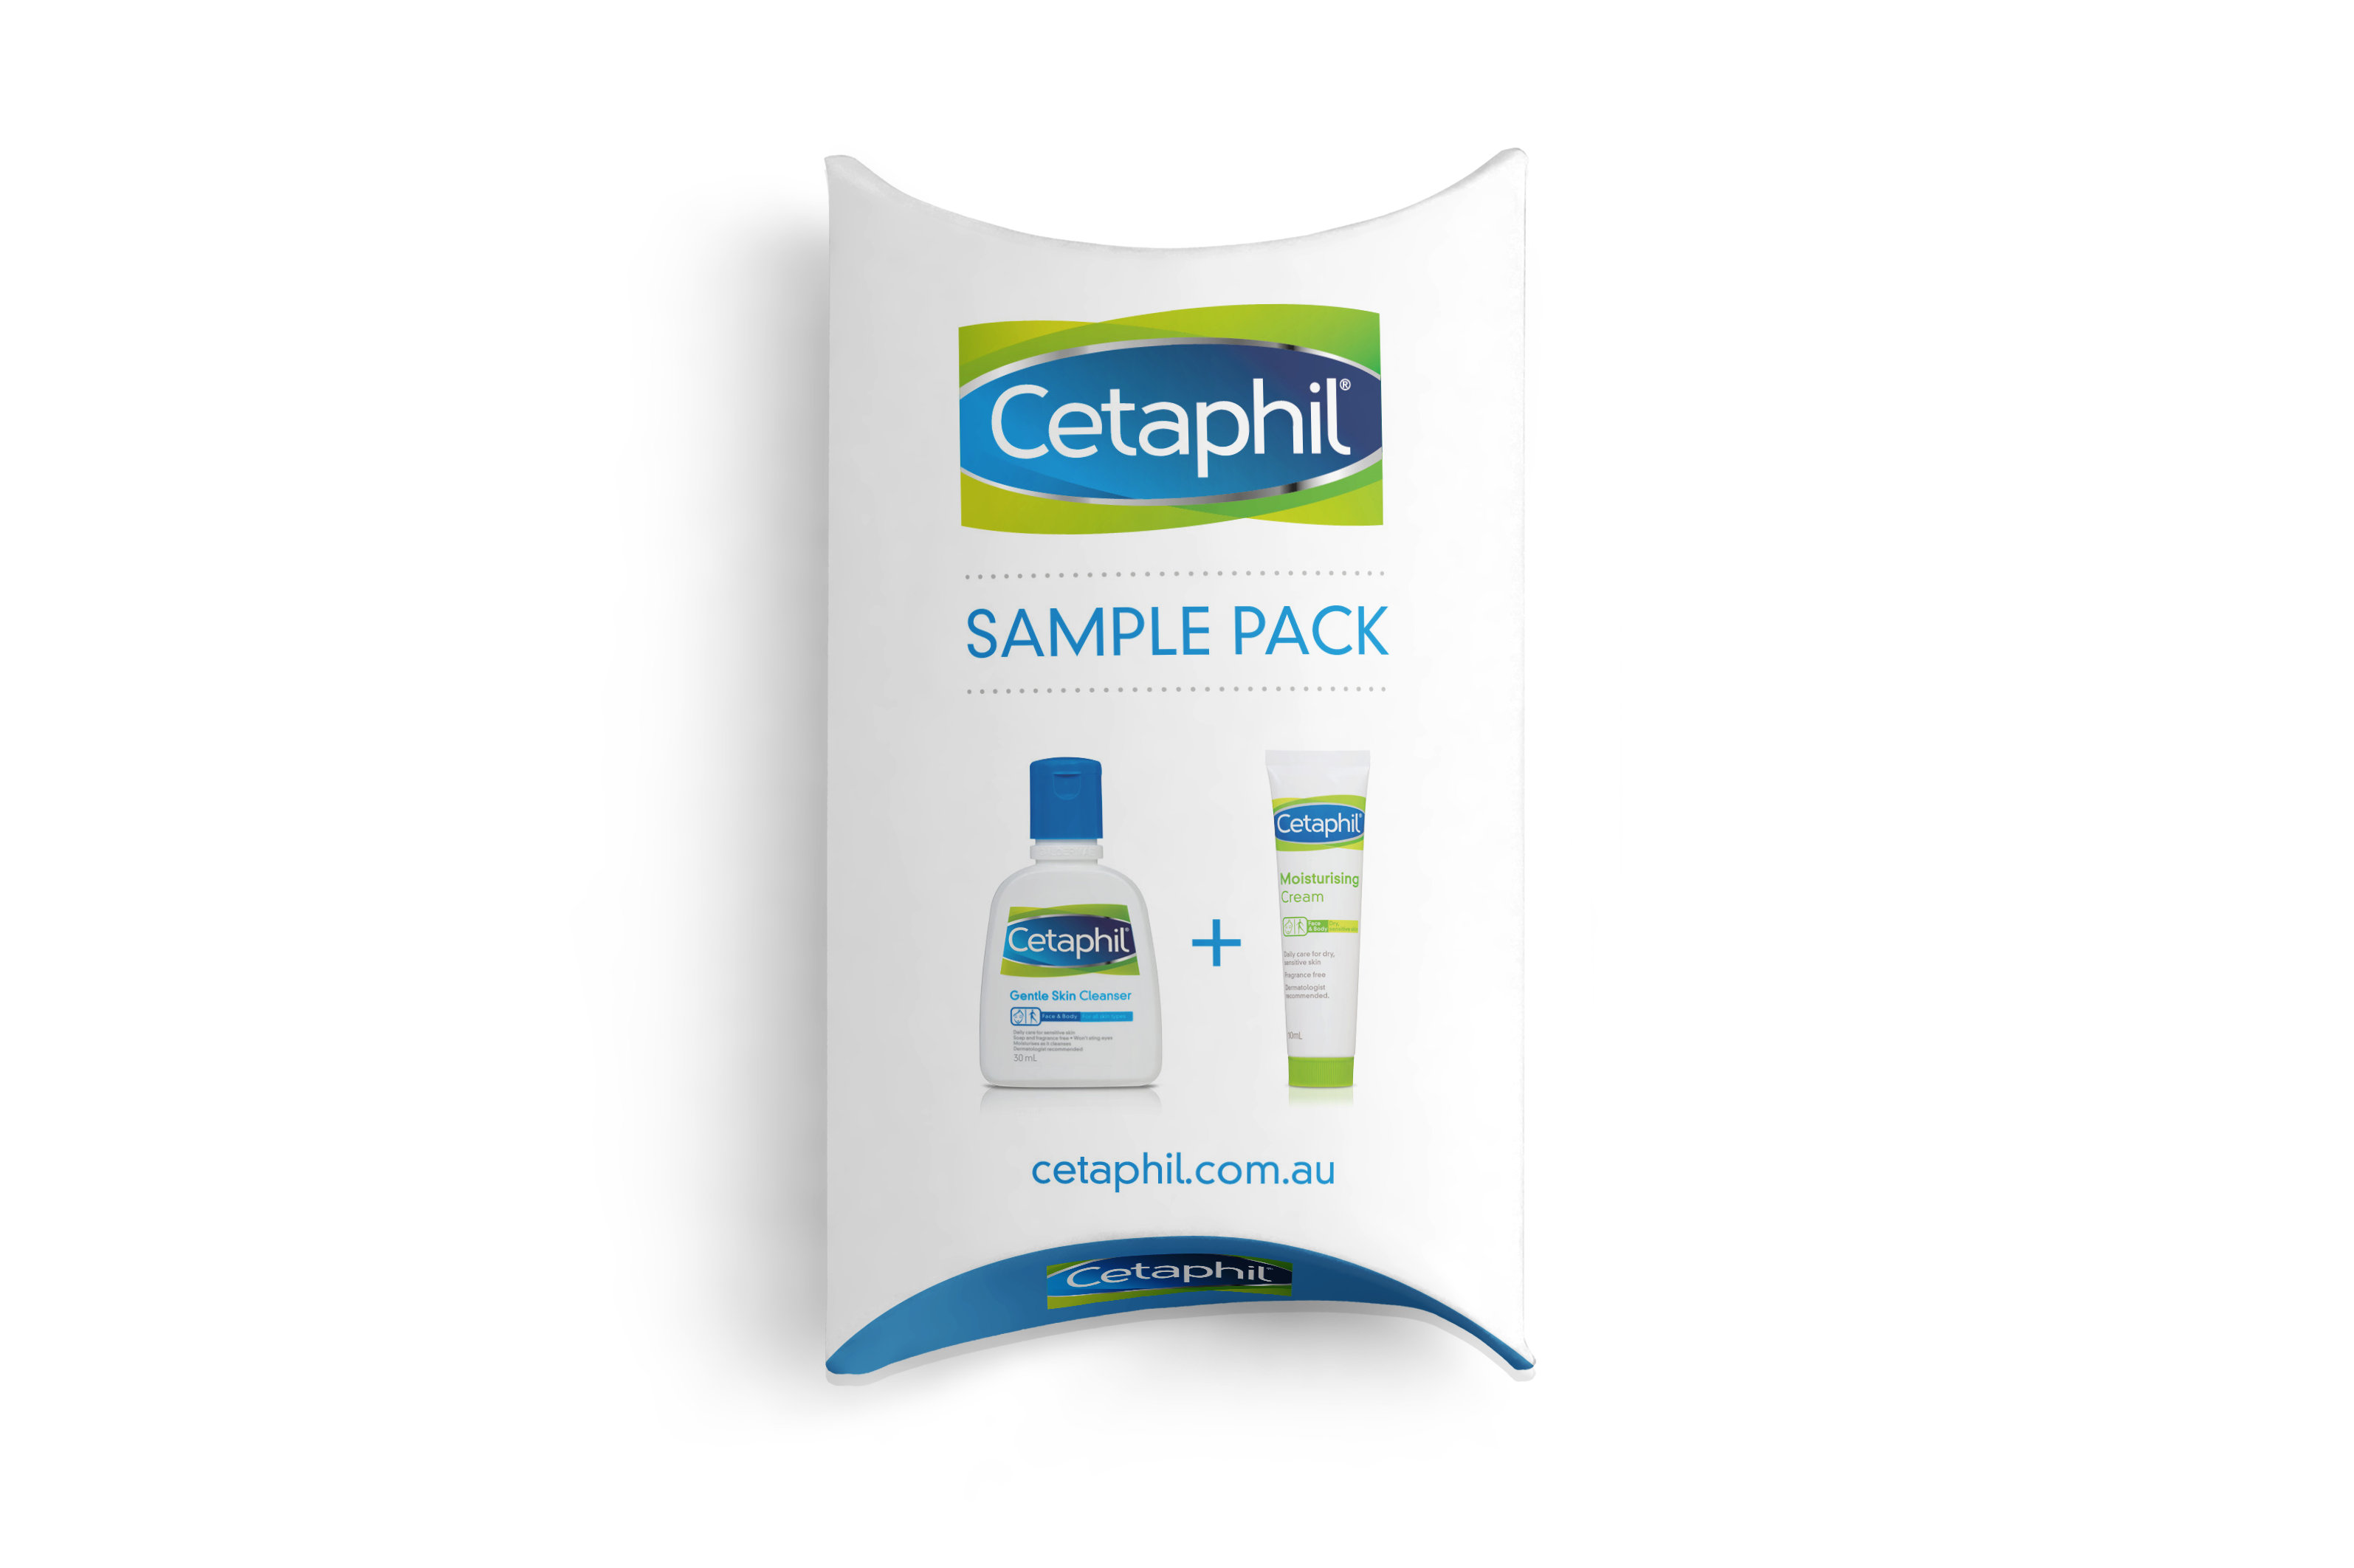 Free Cetaphil Skin Care Sample Gentle Skin Cleanser and